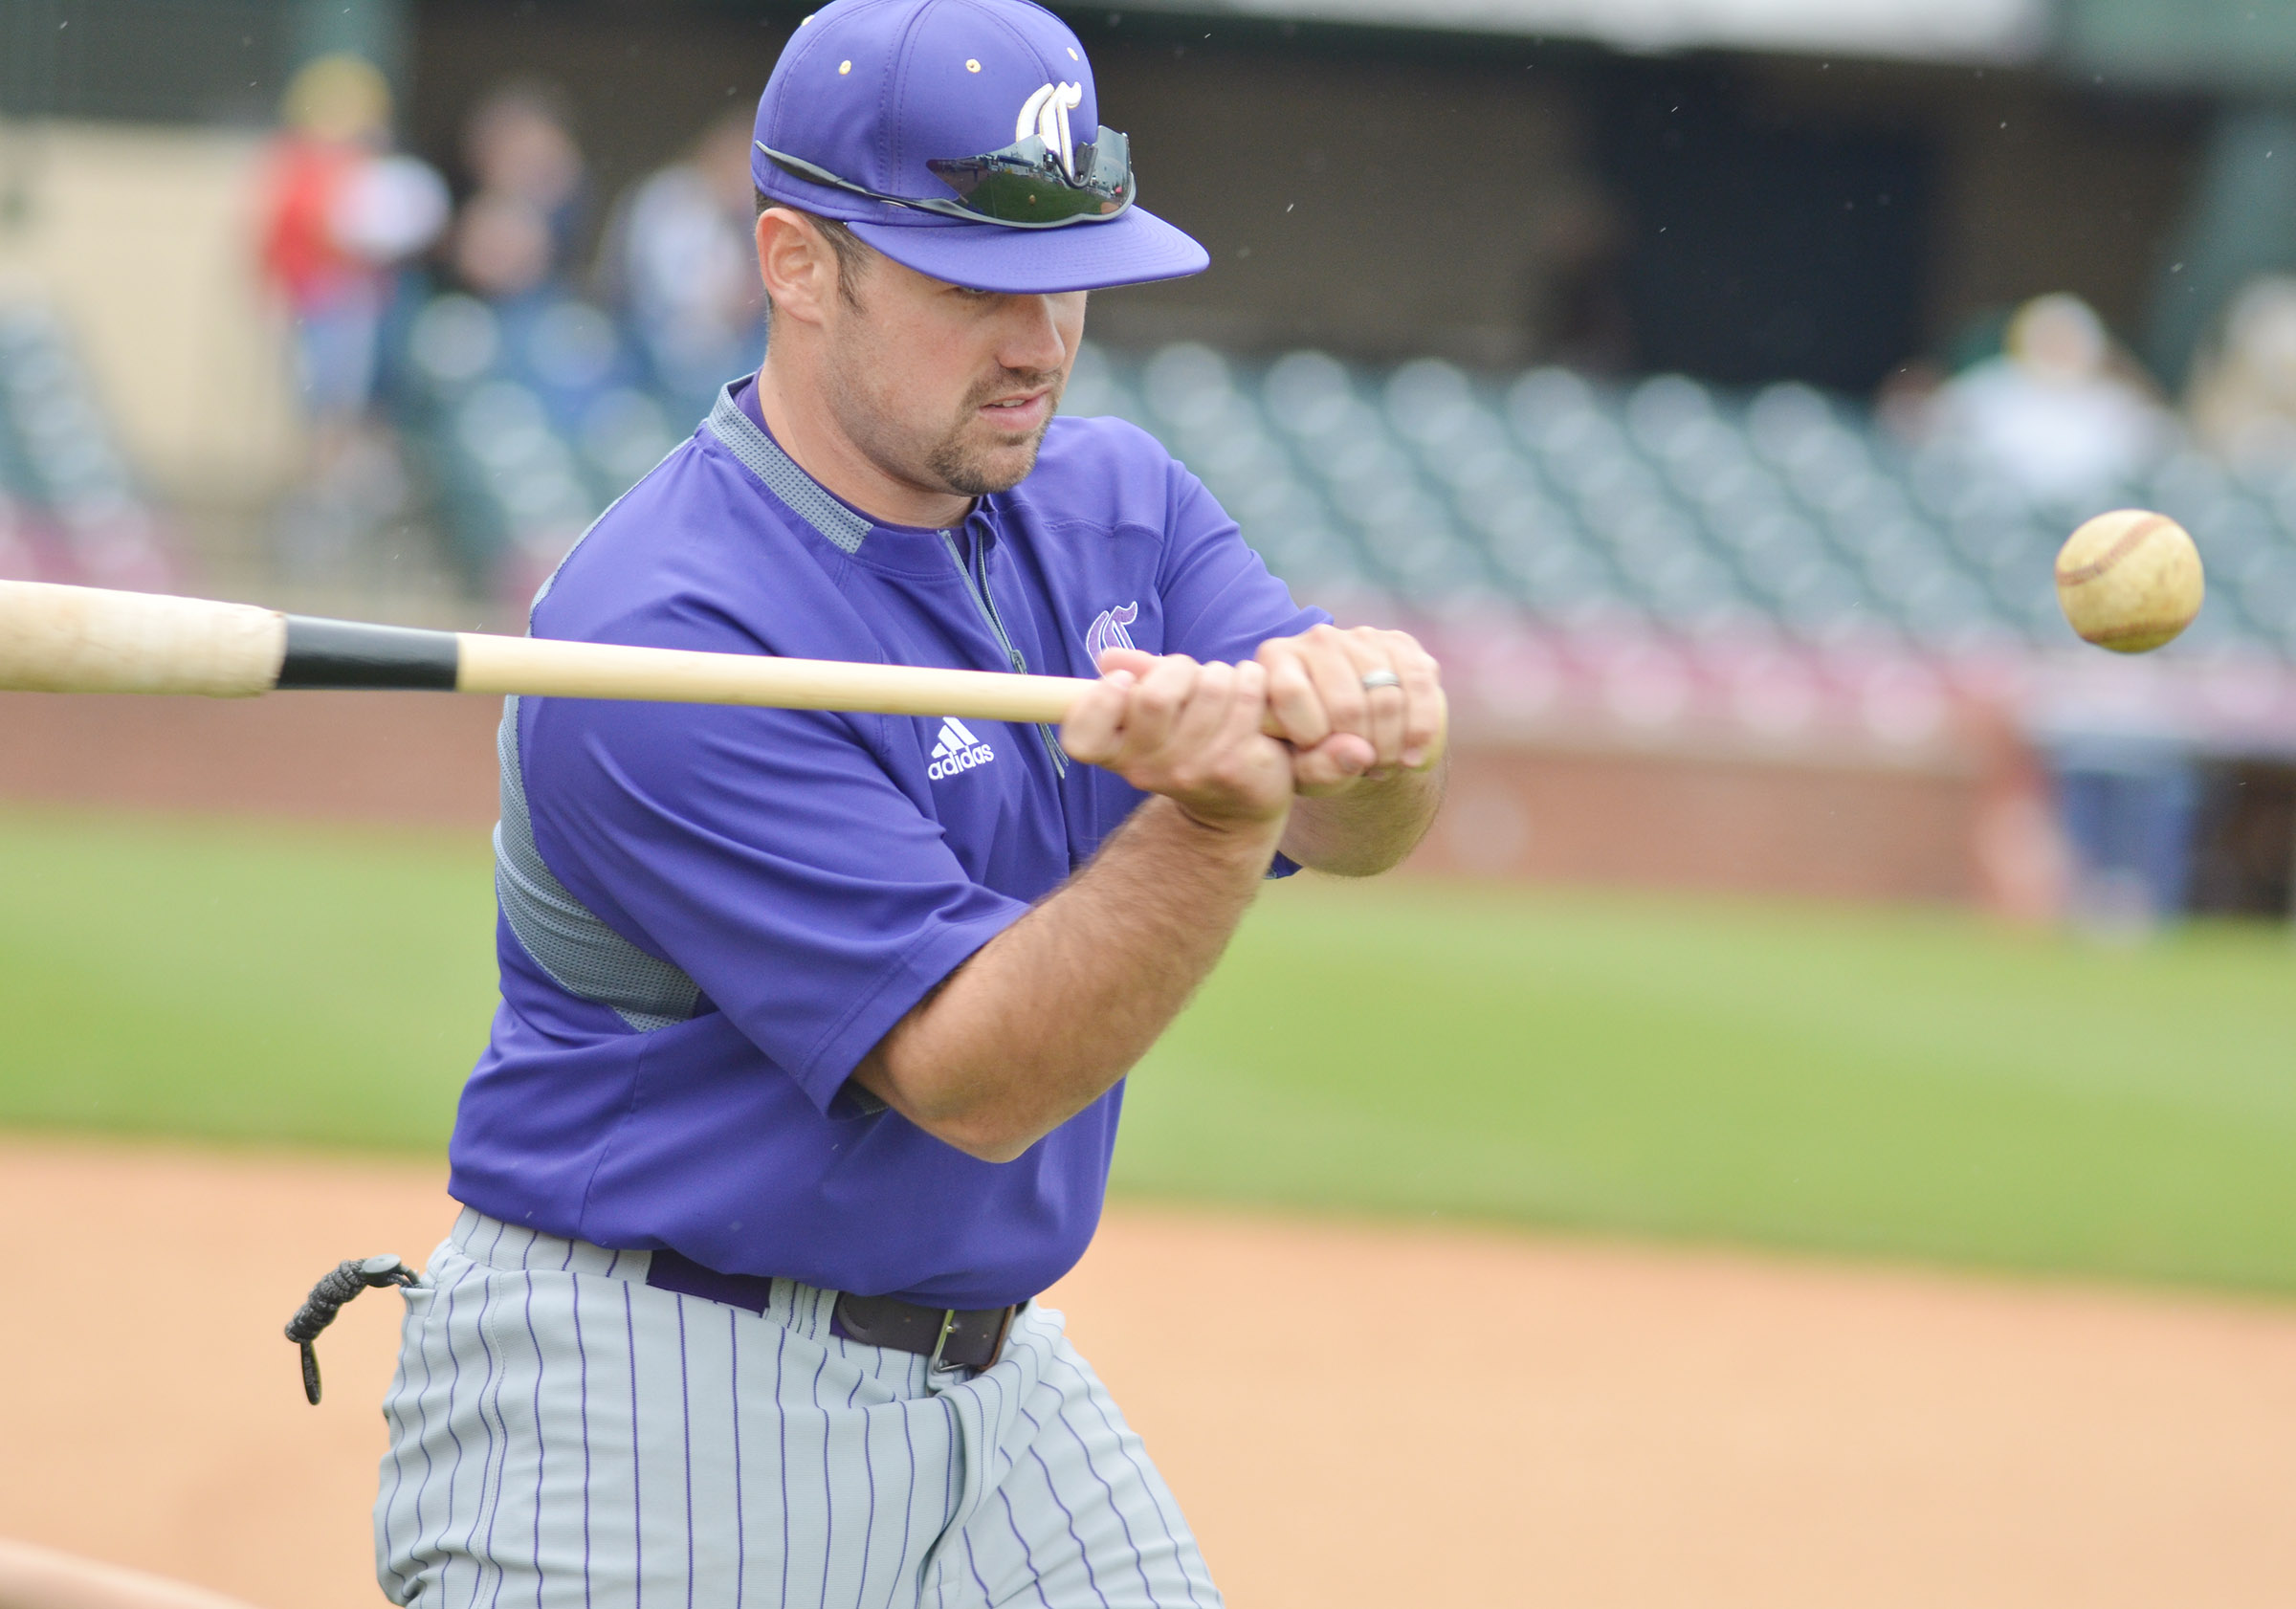 Blake Milby, a former CHS baseball player and assistant coach, has been named head coach. He succeeds Kirby Smith, who coached for 11 years and is now superintendent.